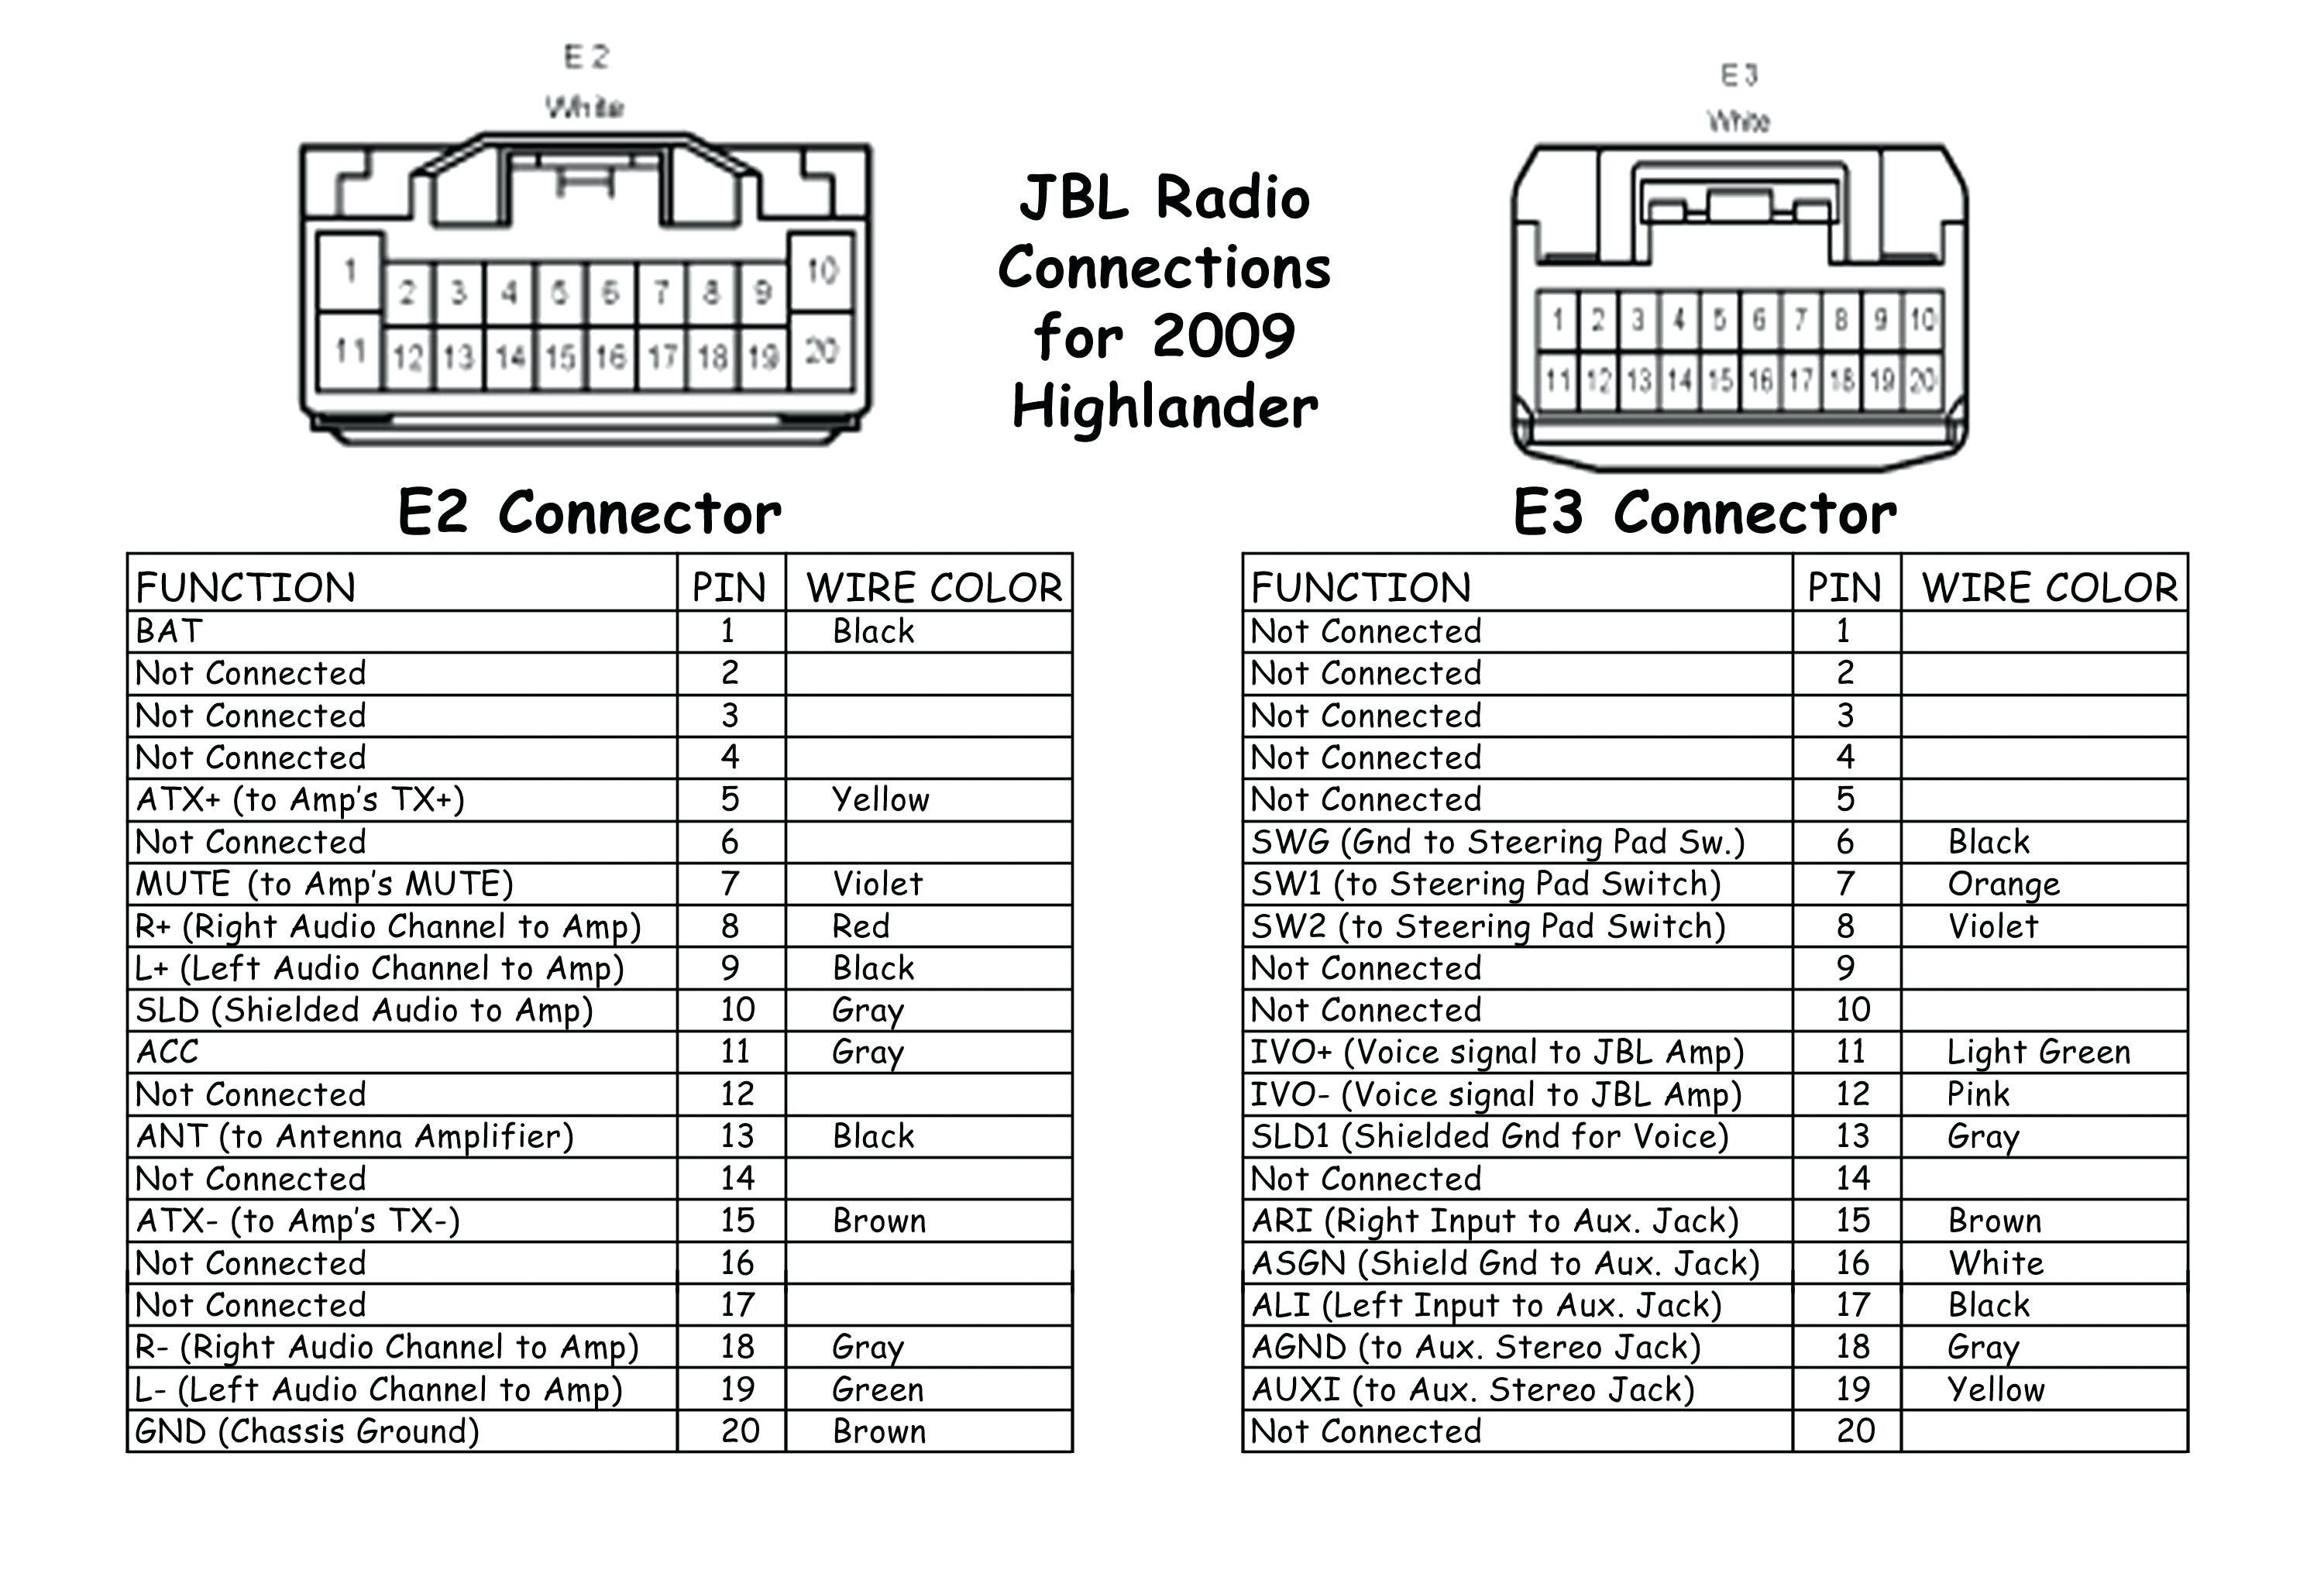 Tundra Radio Wiring - Wiring Diagram All fuss-credibility -  fuss-credibility.huevoprint.it | 2014 Tundra Head Unit Wiring Diagram |  | Huevoprint